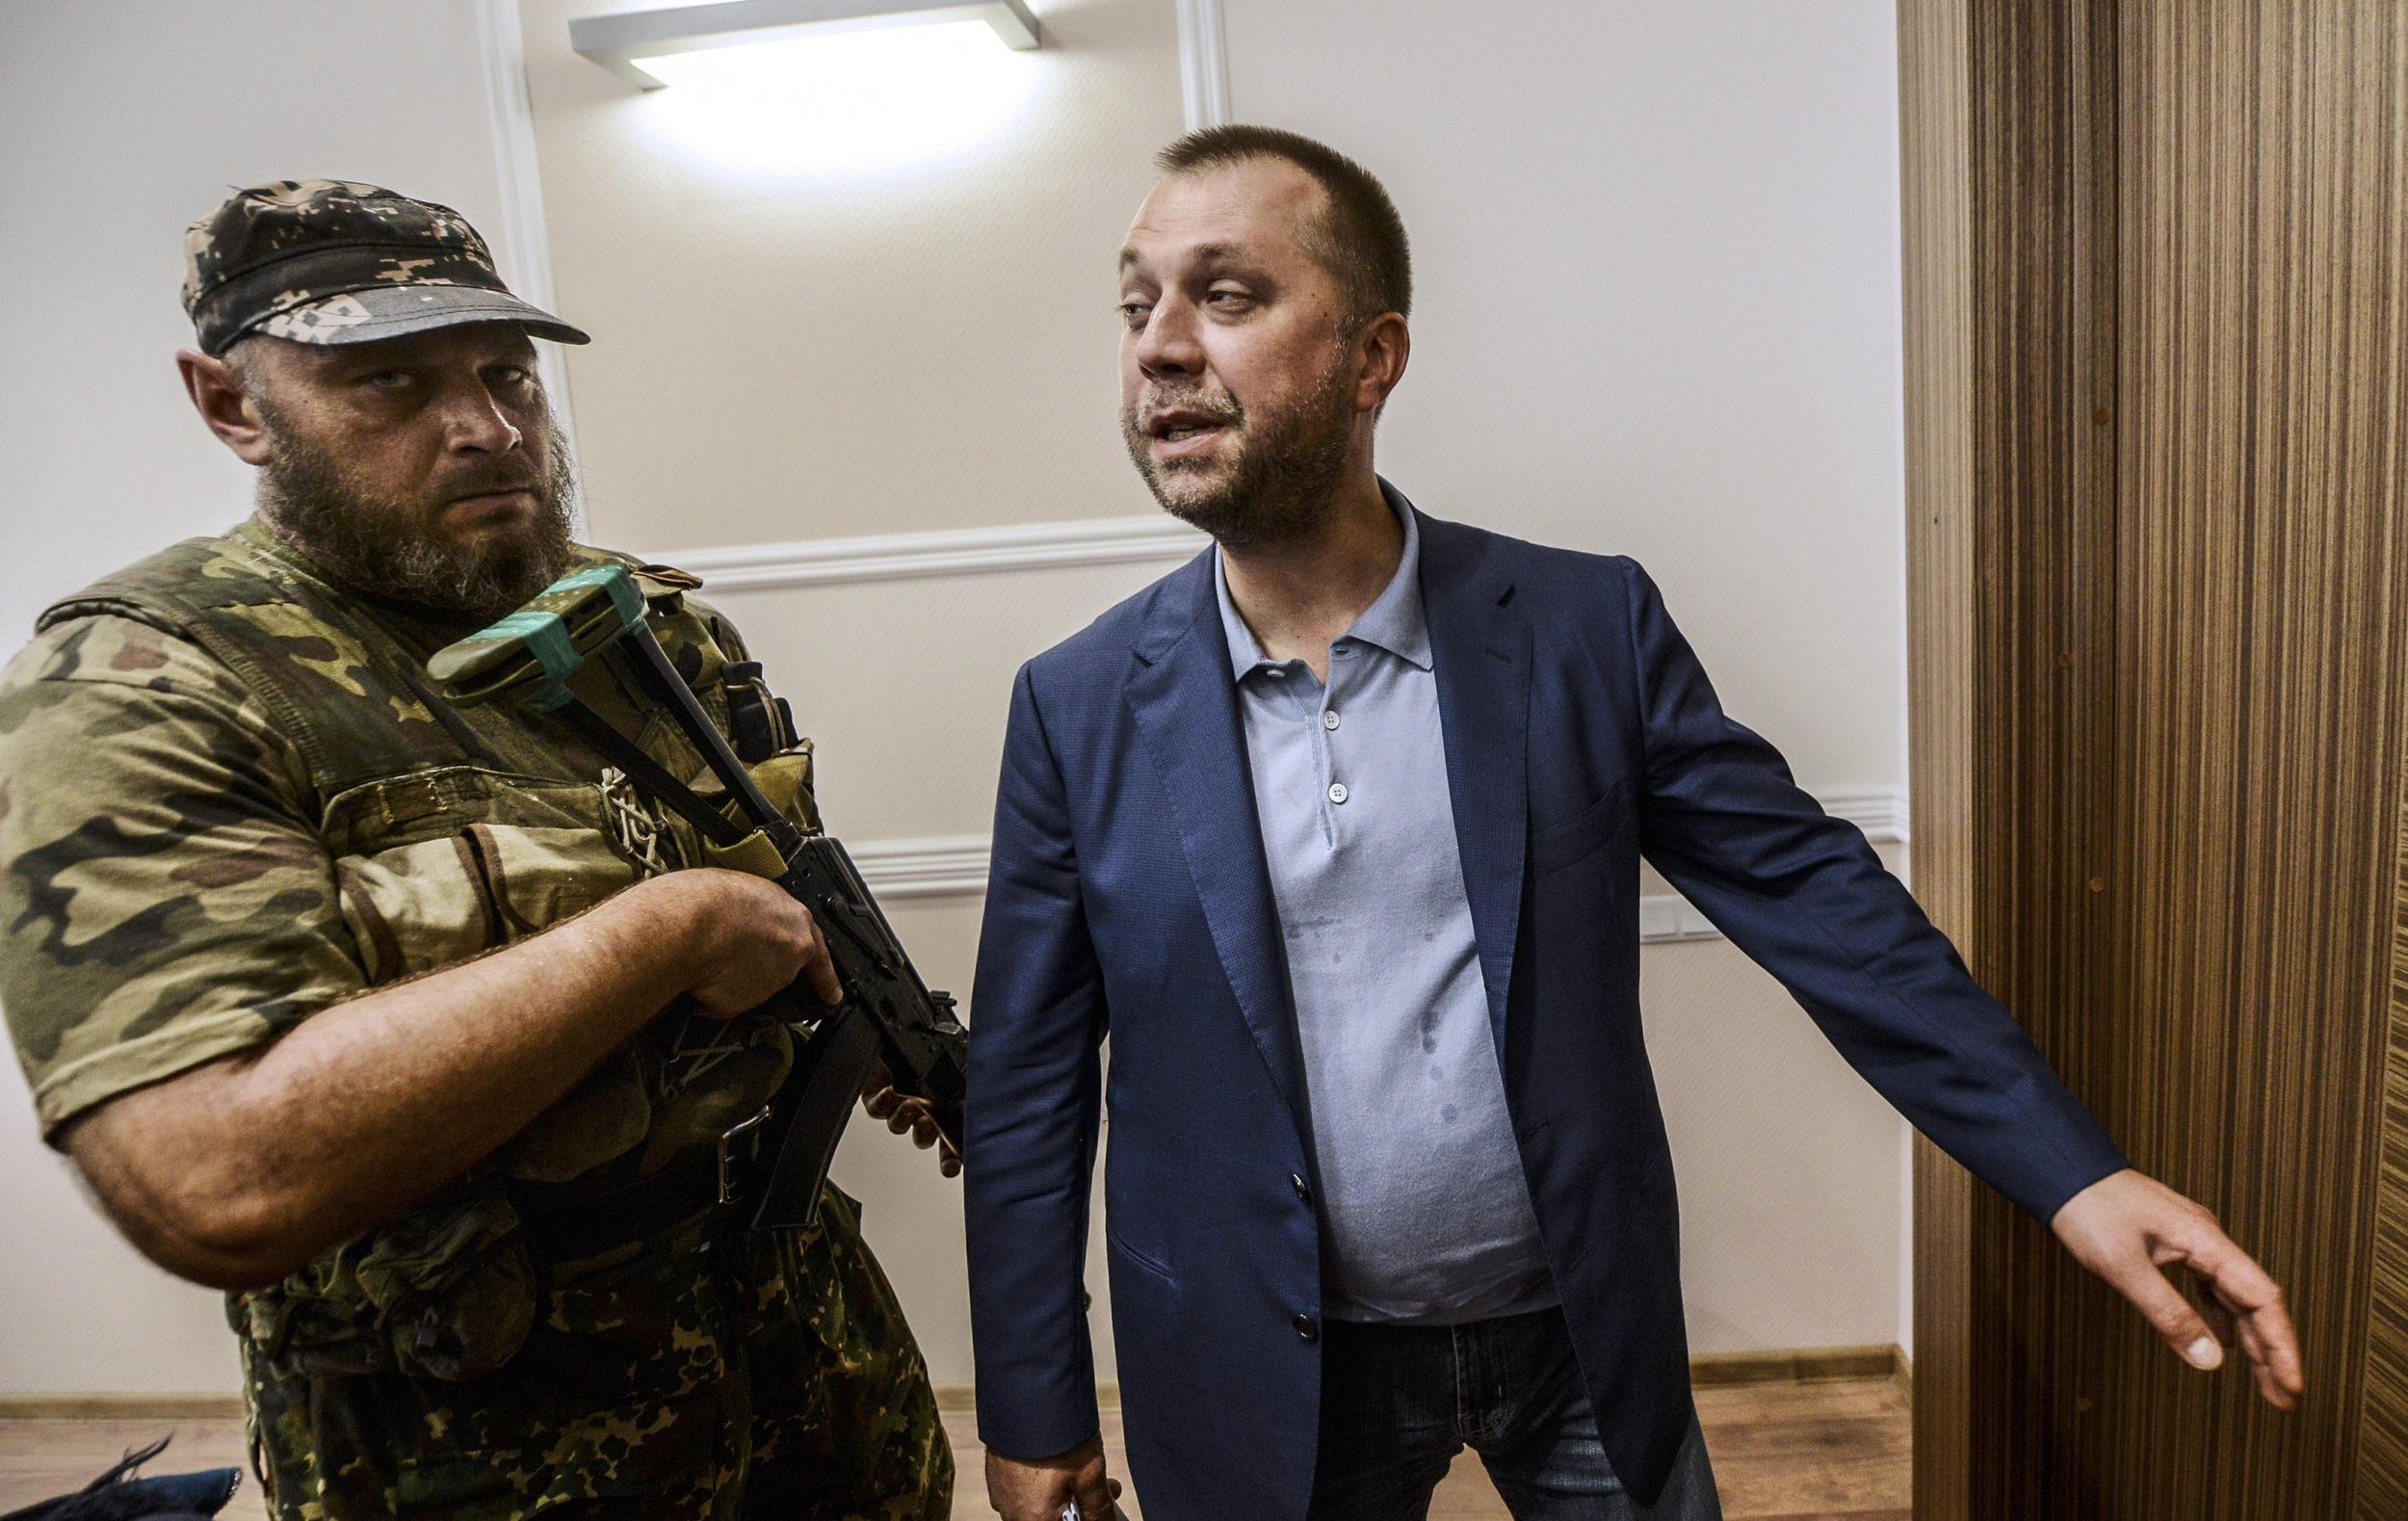 Image: Alexander Borodai stands next to pro-Russian separatist in military fatigues